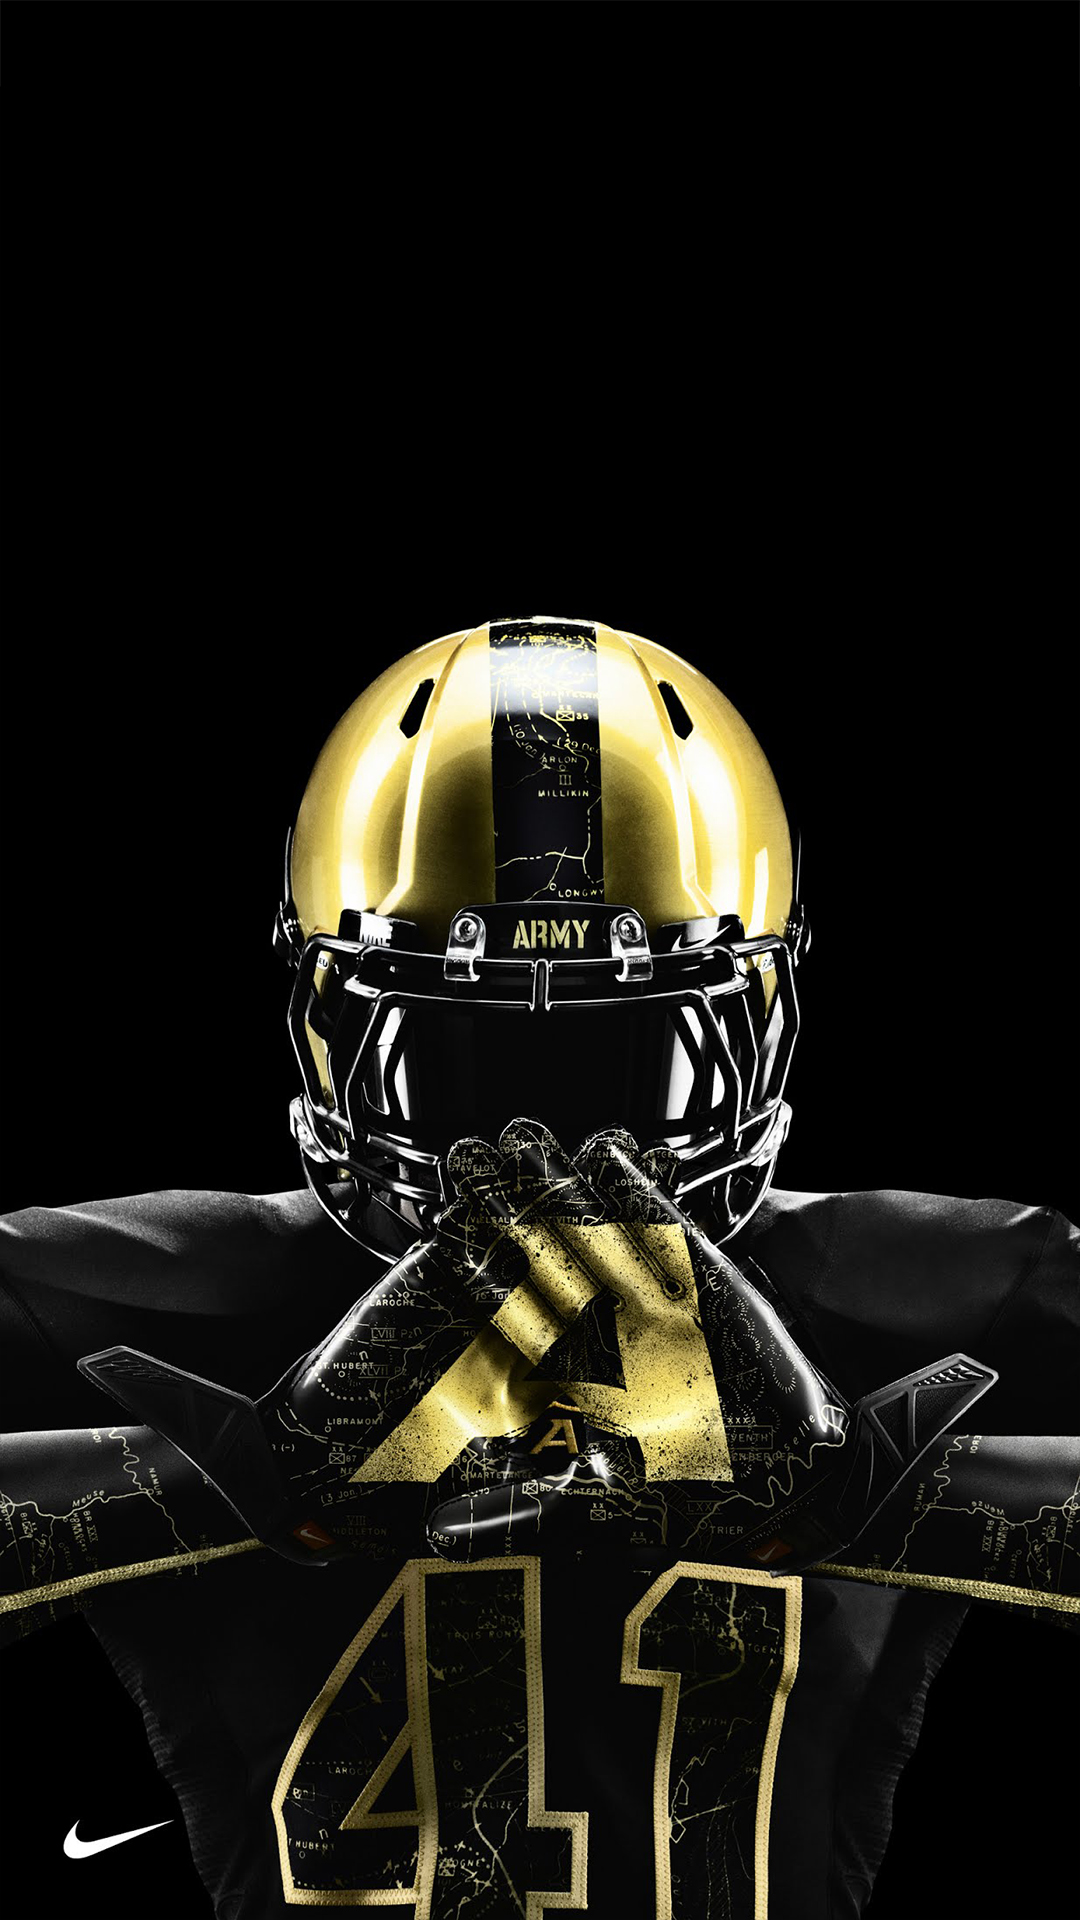 Army nike gloves htc one wallpaper   Best htc one 1080x1920